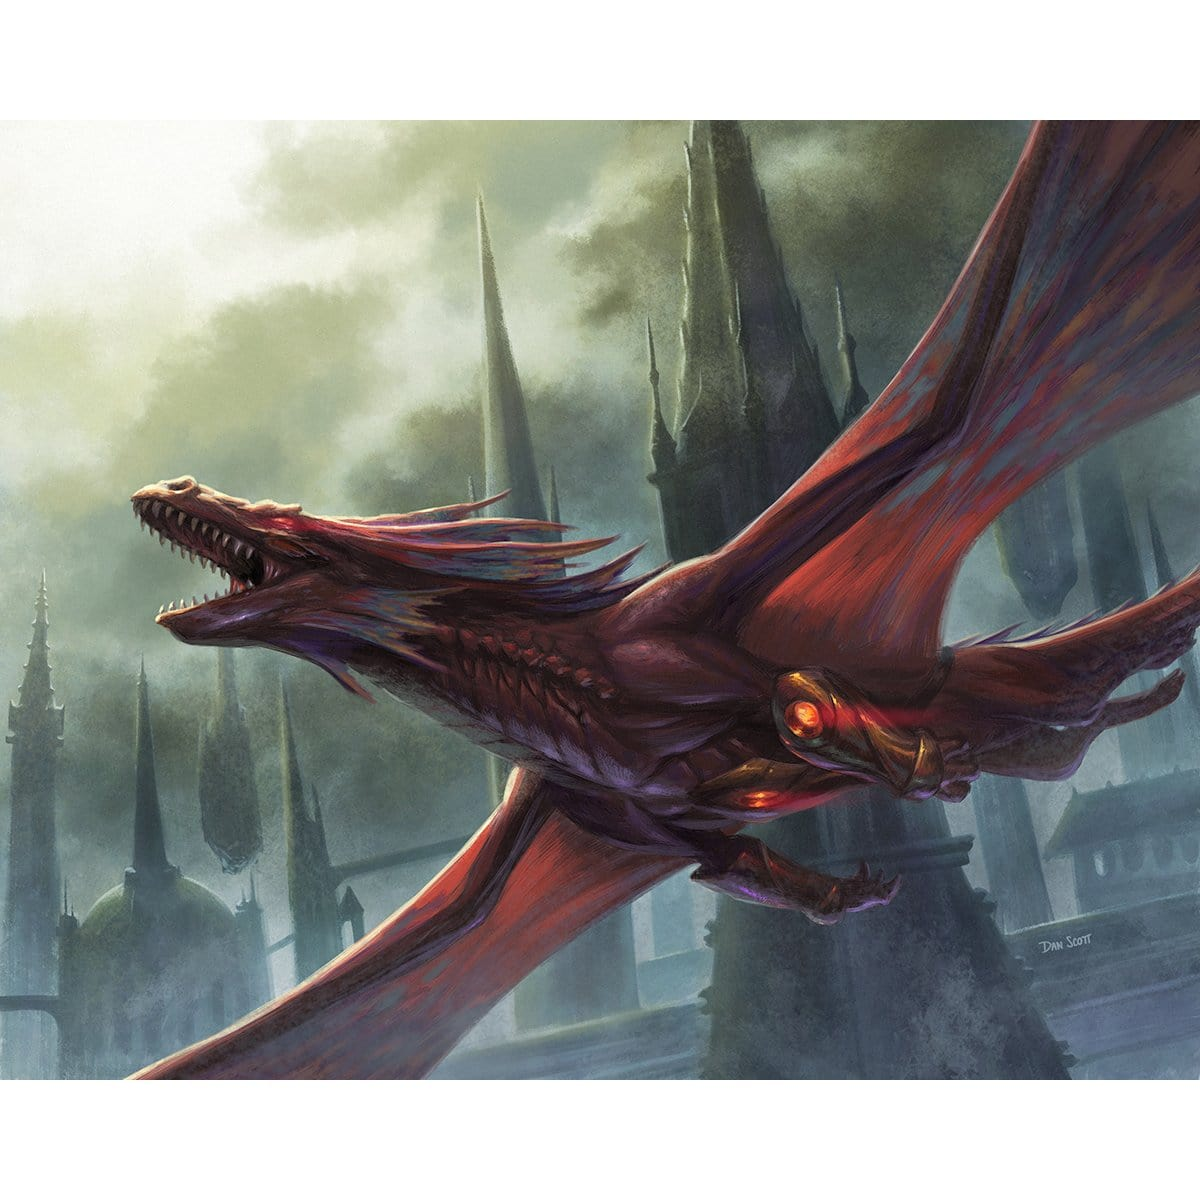 Hypersonic Dragon Print - Print - Original Magic Art - Accessories for Magic the Gathering and other card games